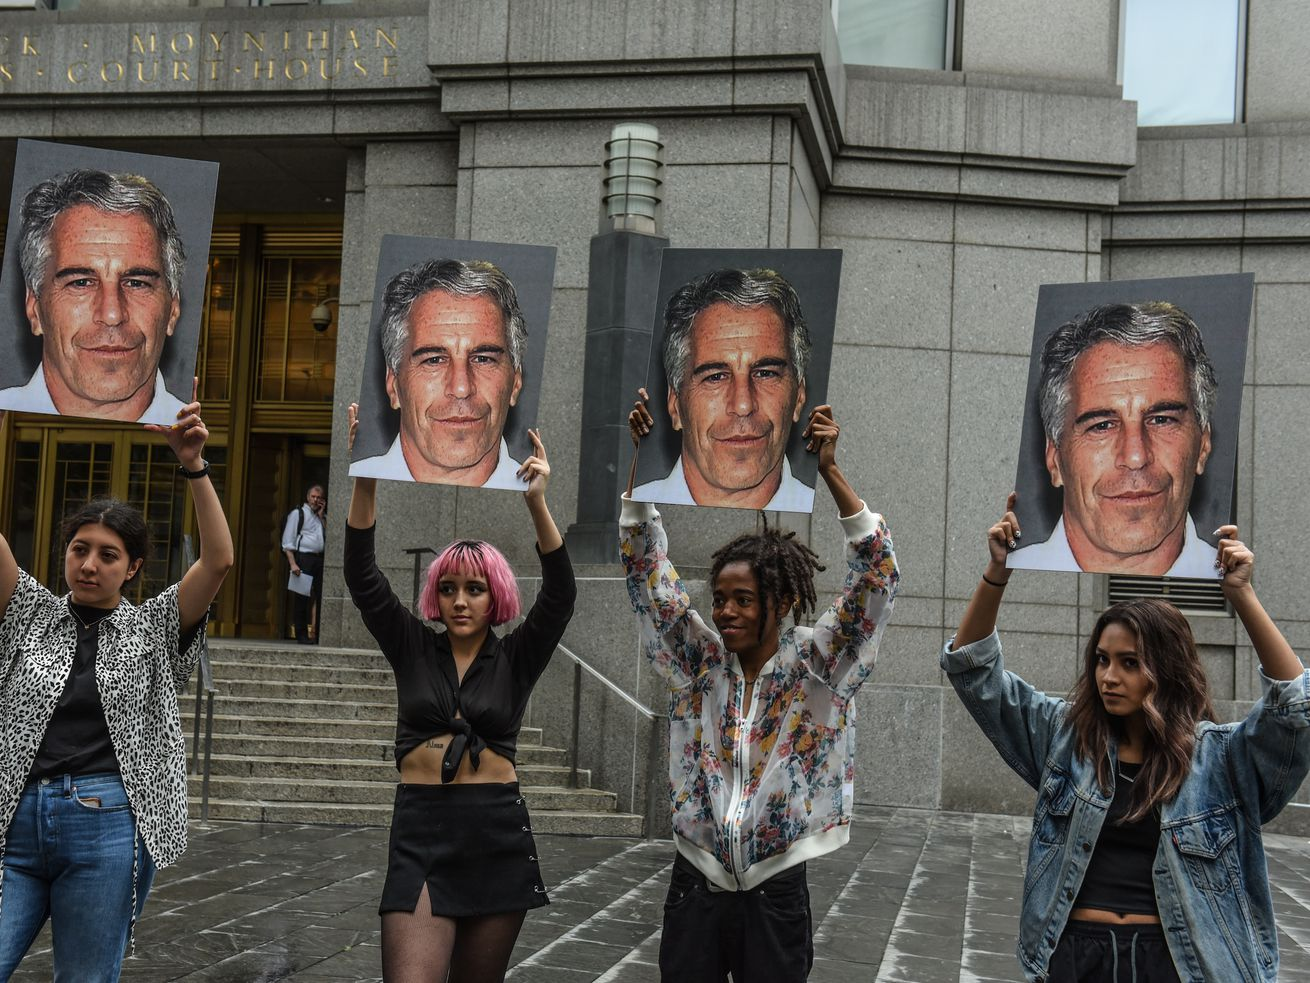 Protesters hold up signs with photos of Jeffrey Epstein in front of a New York City federal courthouse on July 8, 2019